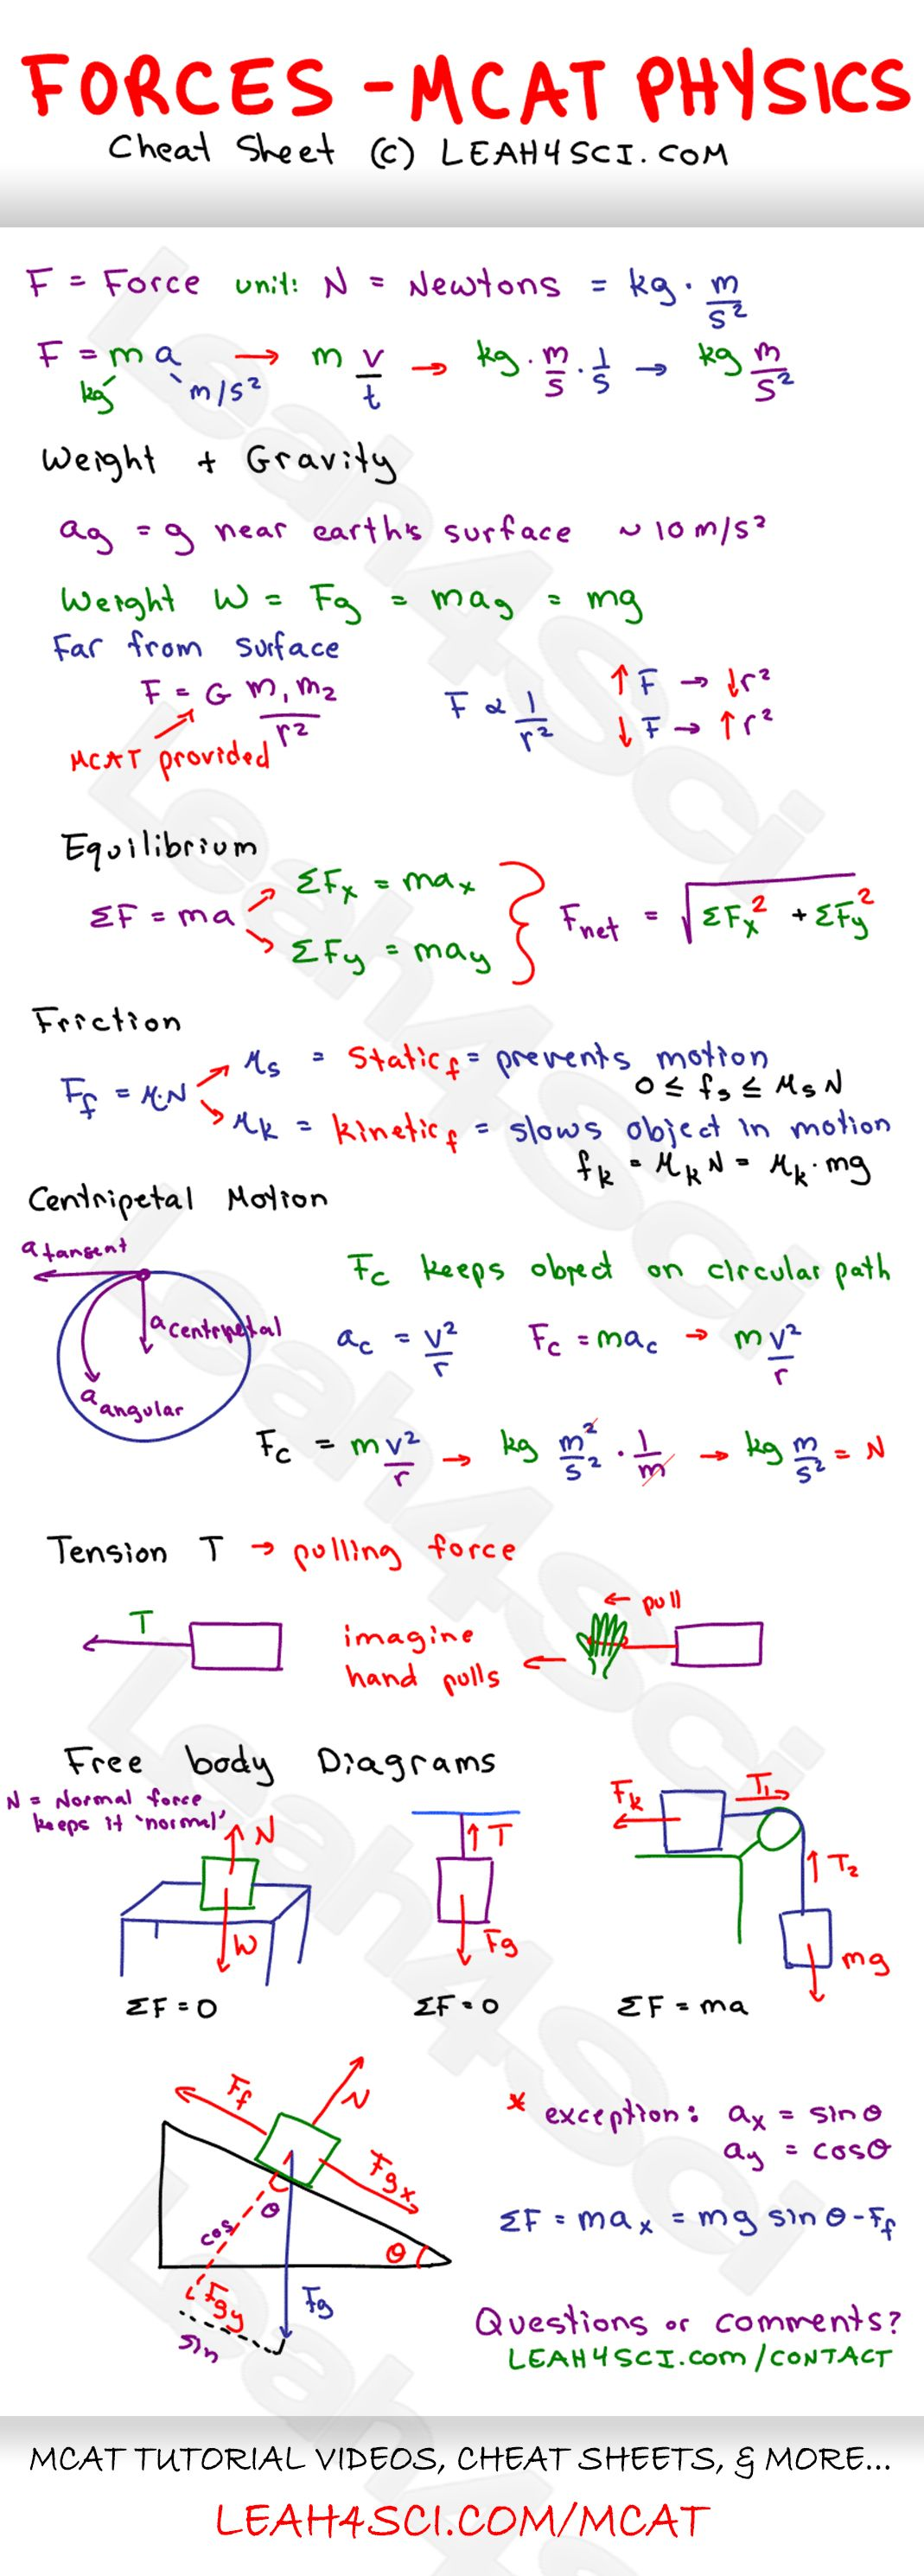 Mcat Forces Study Guide Cheat Sheet By Leah4sci